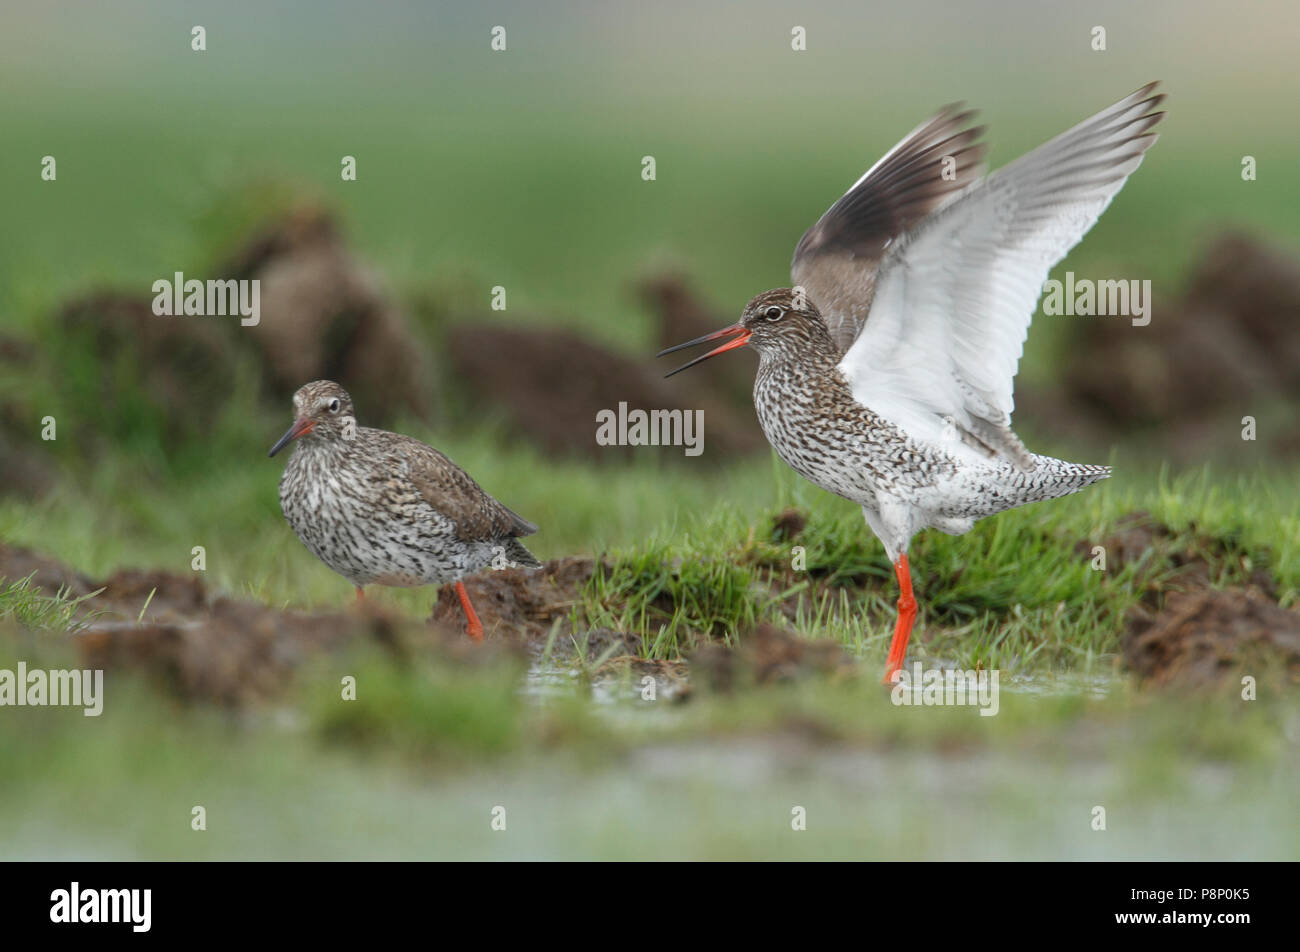 Common redshank courting on wet farmers land - Stock Image